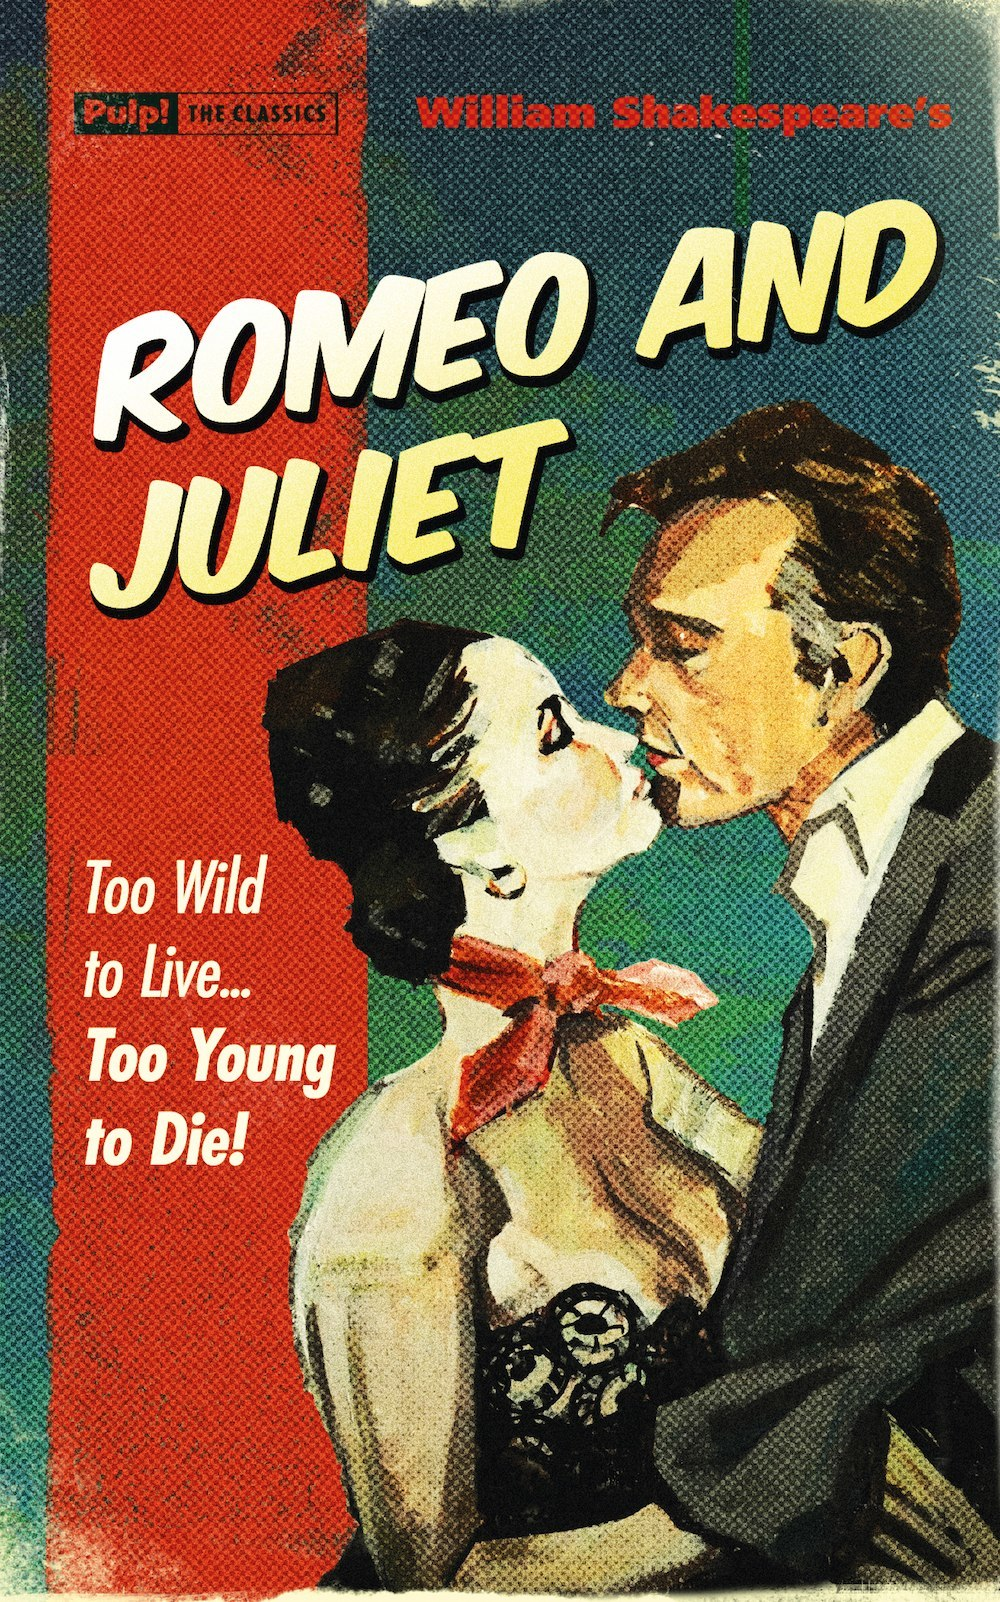 a literary analysis of romeo and juliet and hamlet by william shakespeare